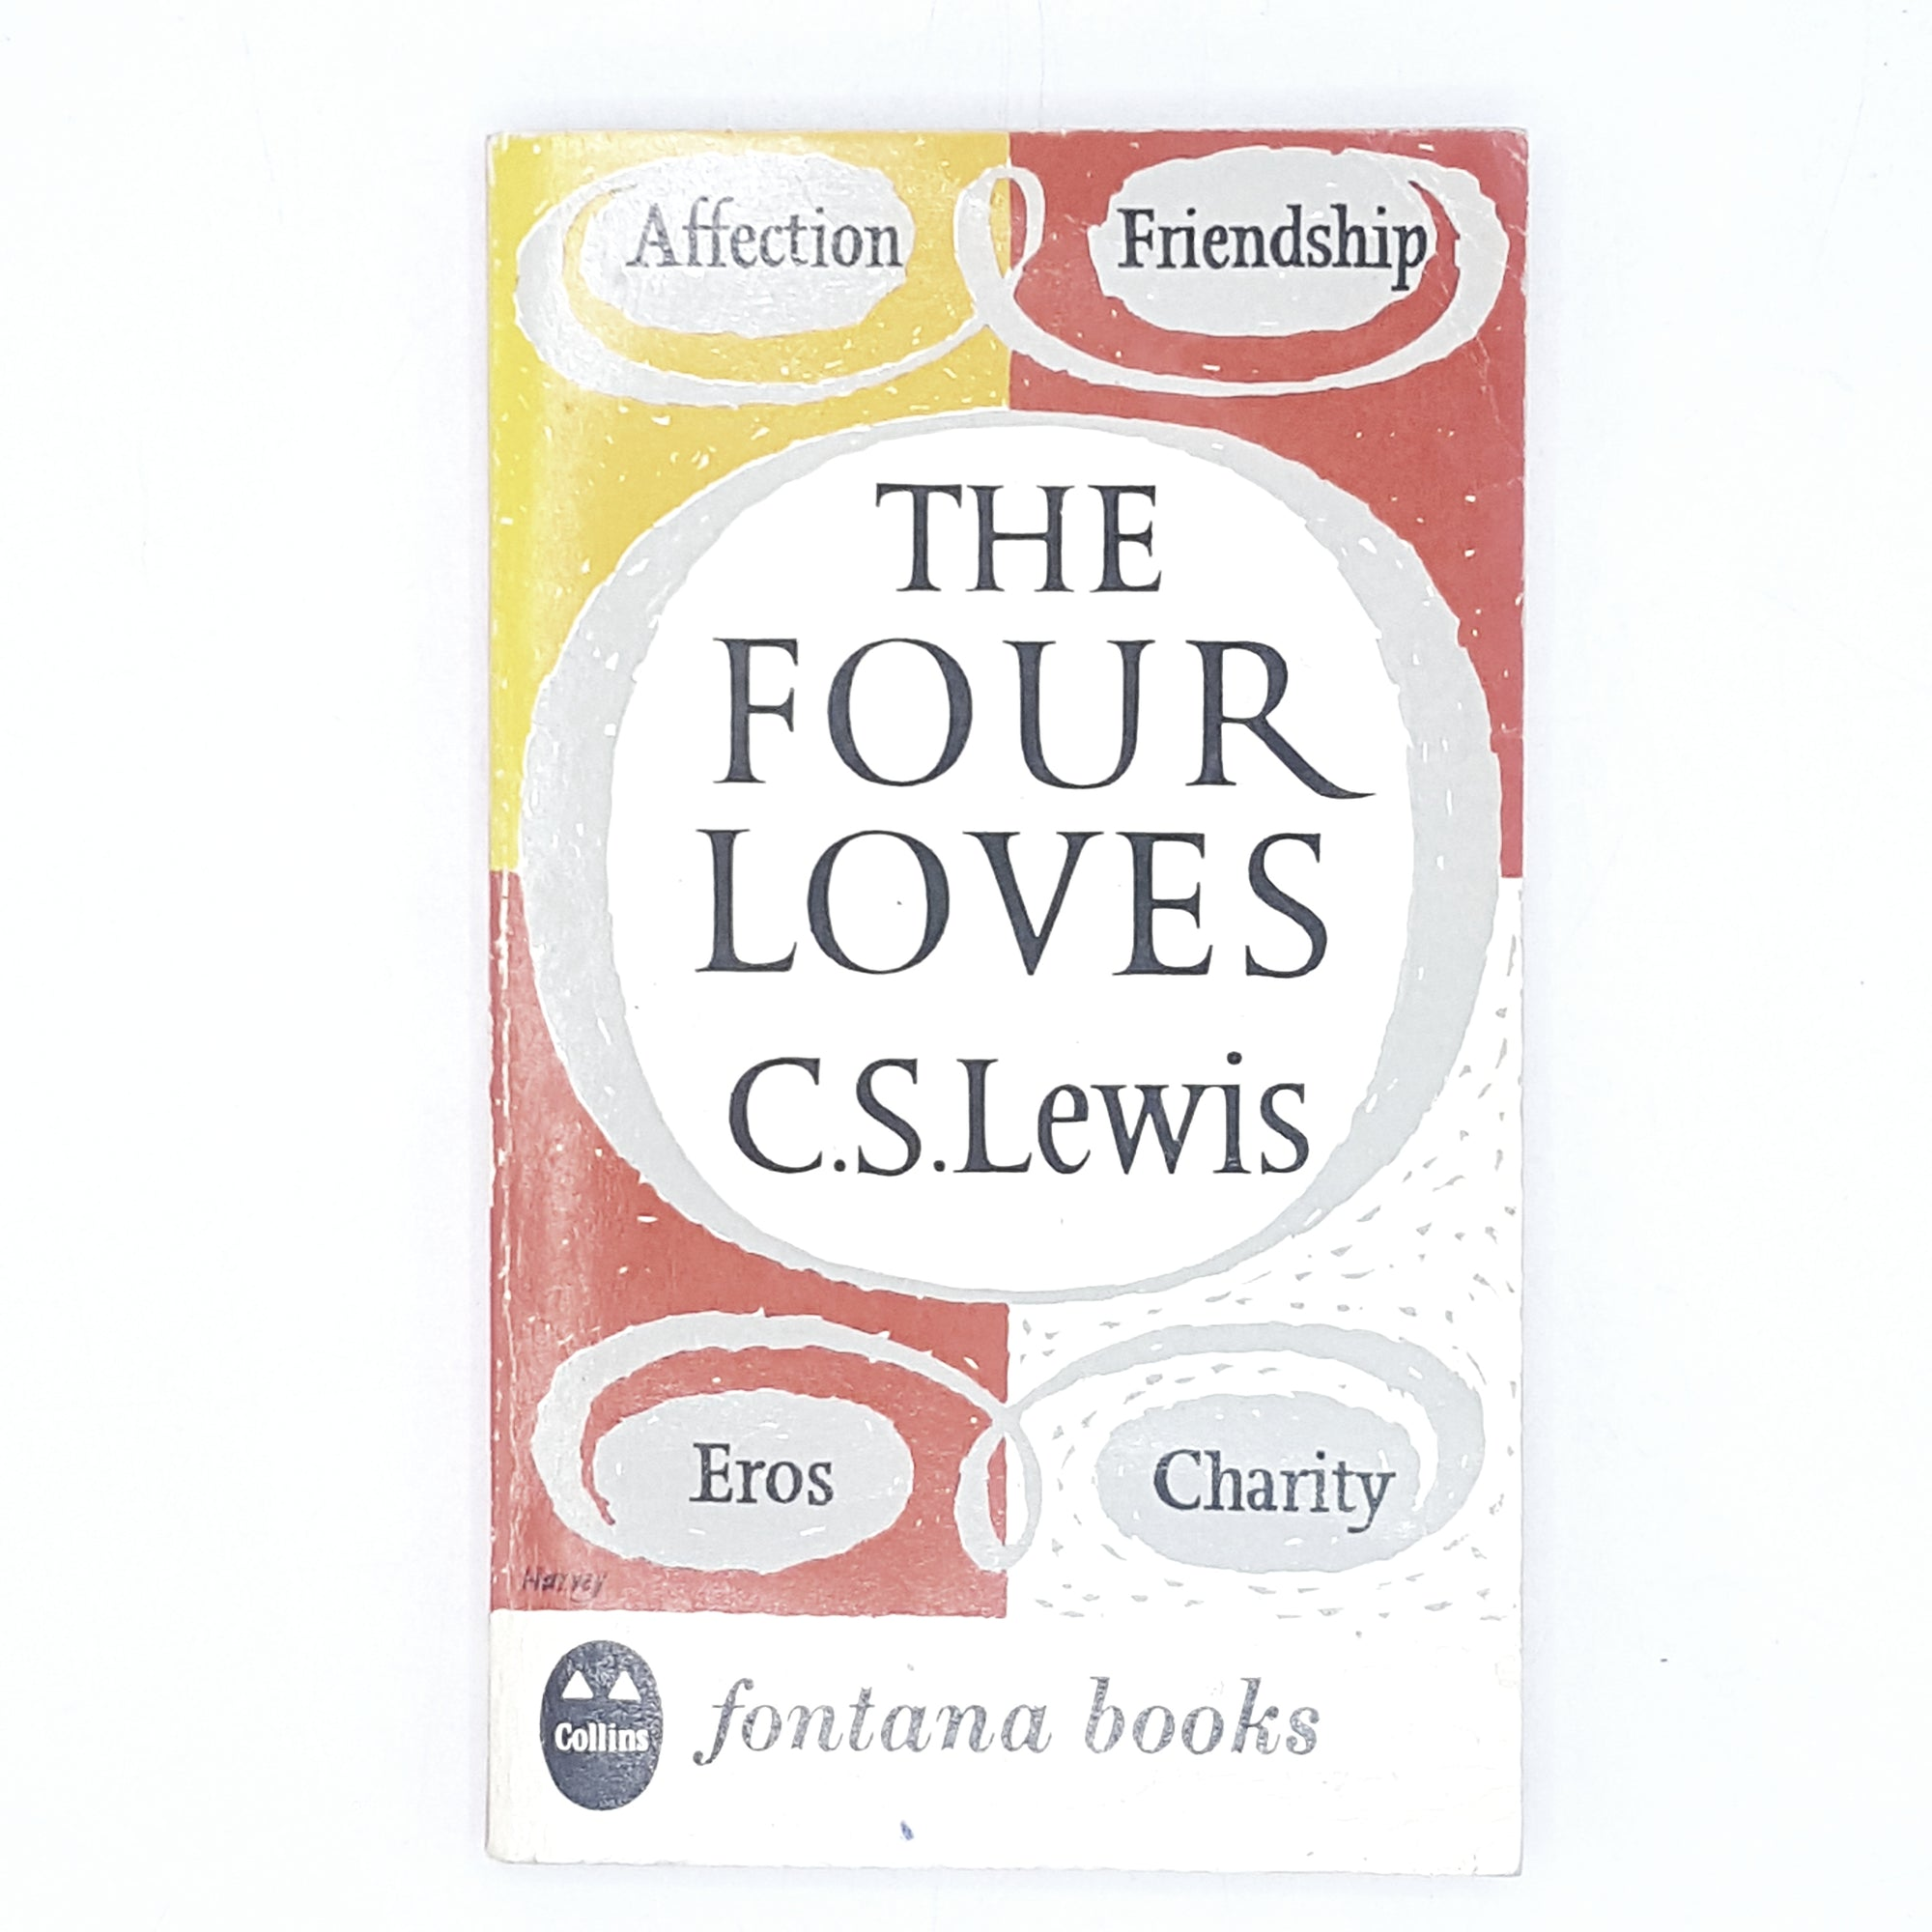 C. S. Lewis's The Four Loves 1976